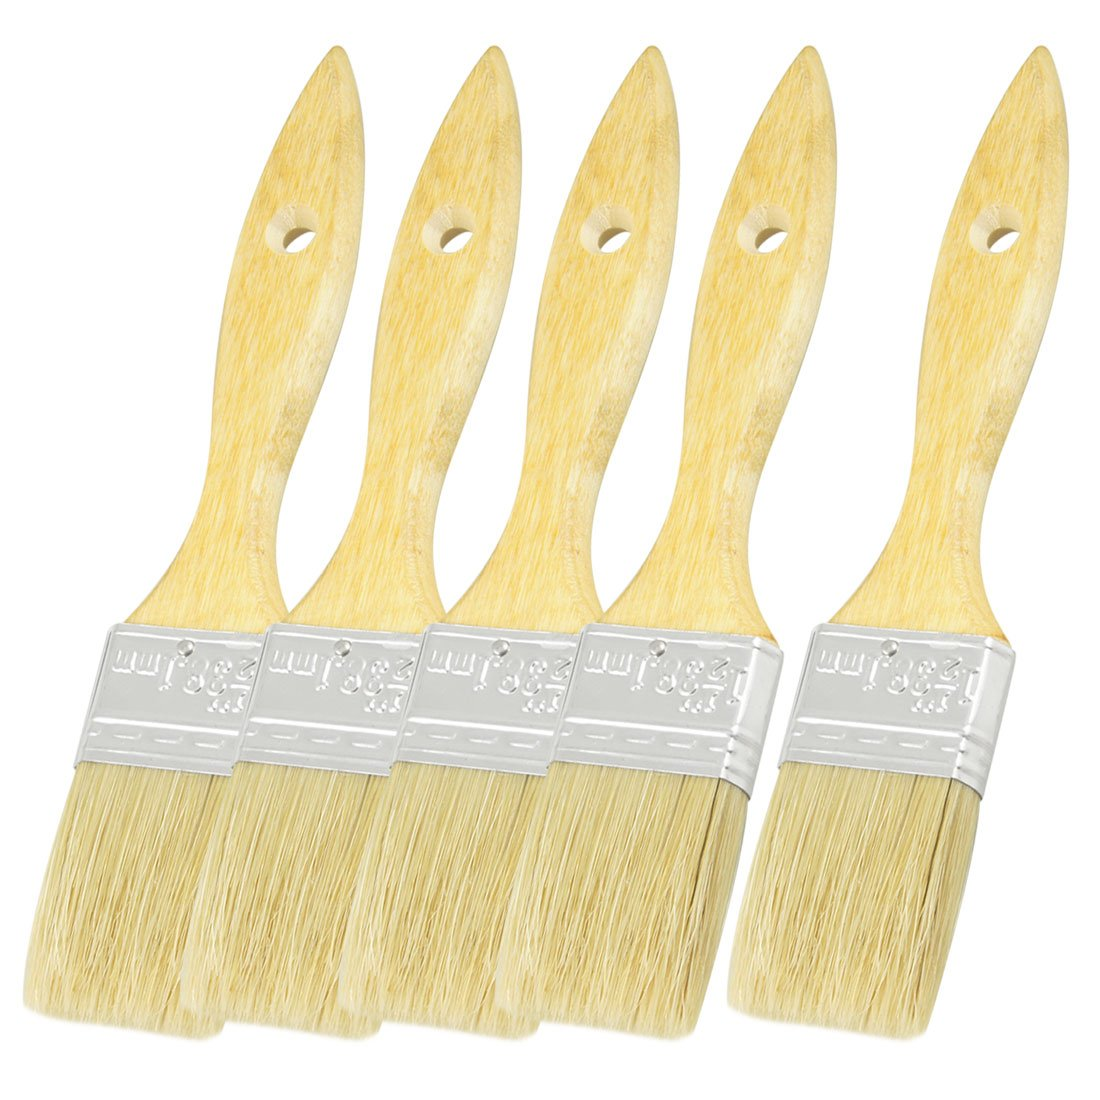 uxcell Furniture Painting Bristle Hair Wooden Handle Paint Brush 1.5 Inch Wide 5pcs